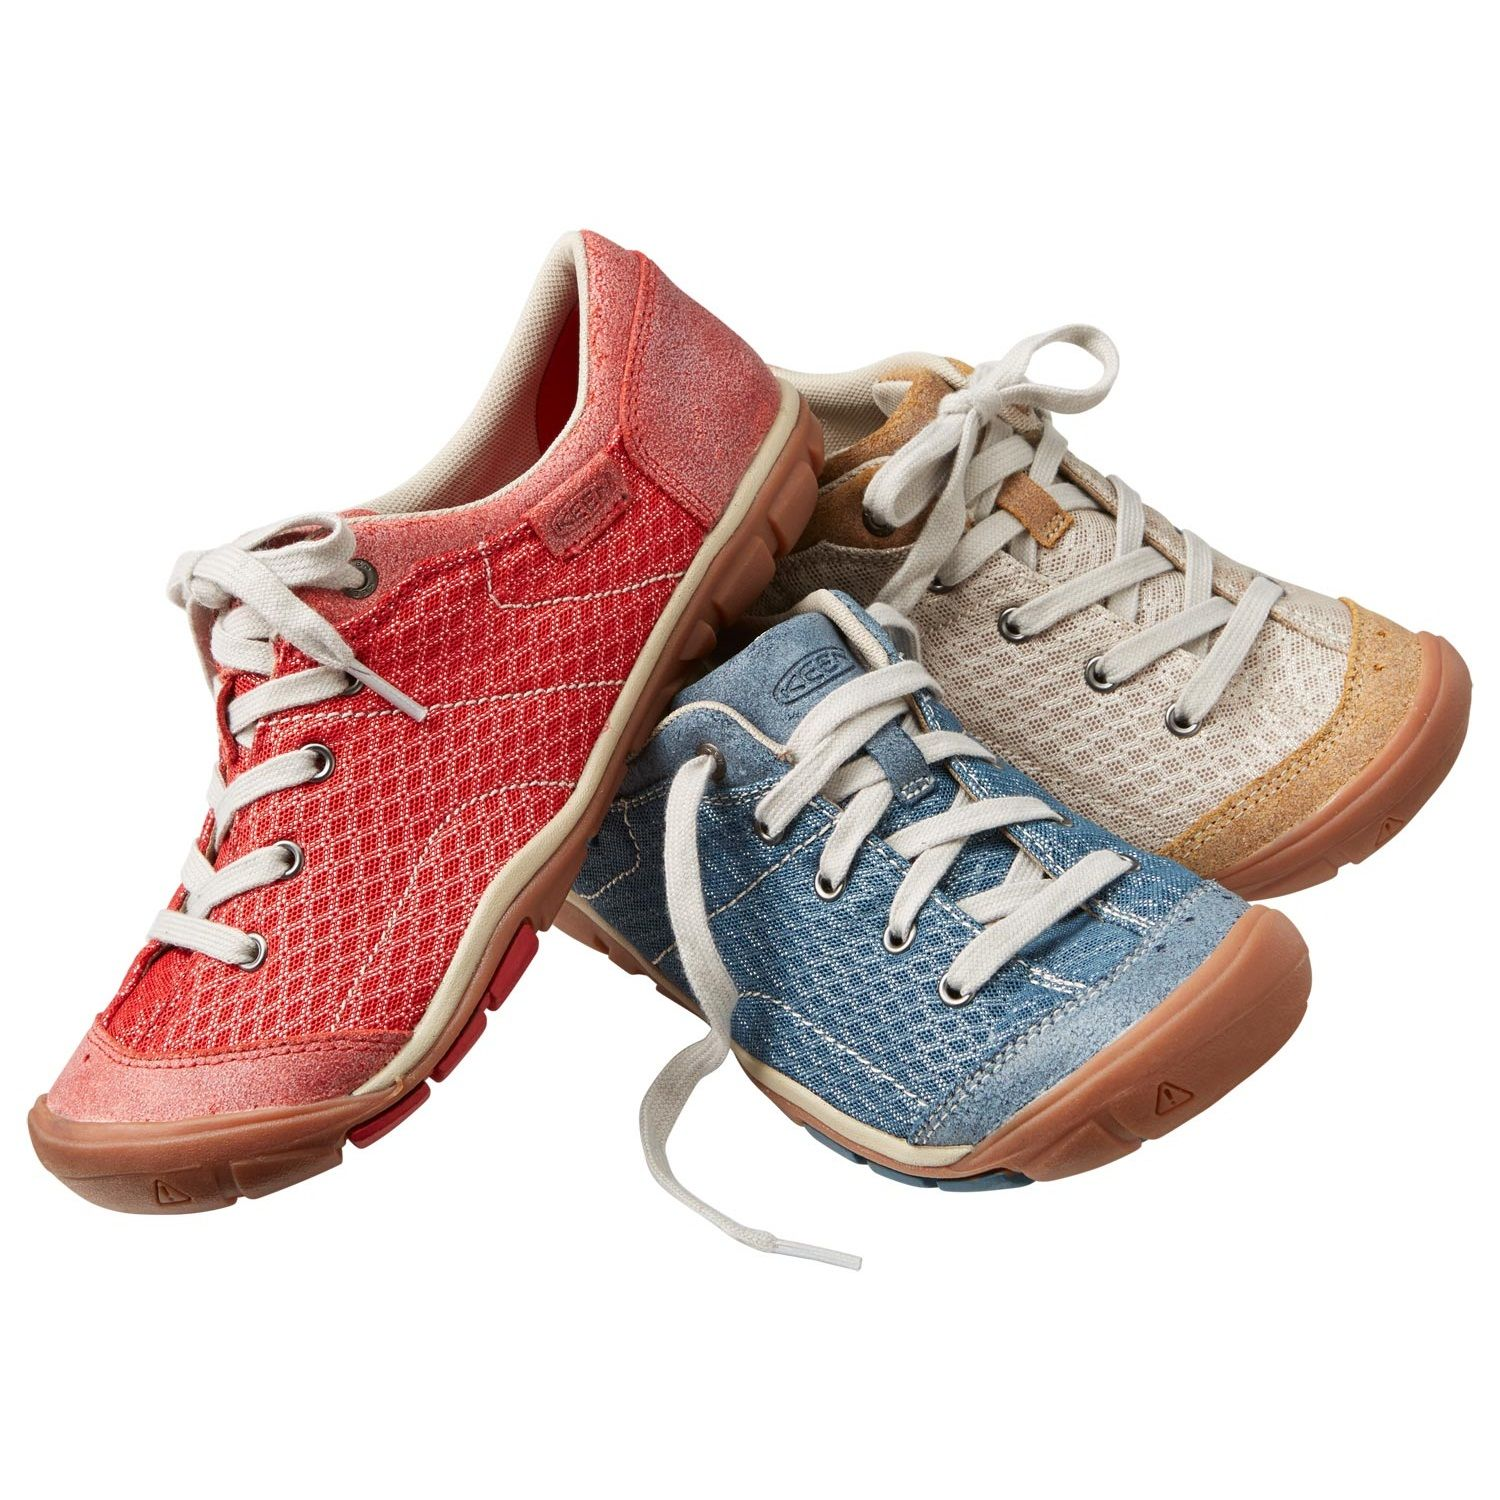 f84cae8ceb9 Women's KEEN Mercer Lace Up Shoes | Shoes | Shoes, Lace up shoes ...